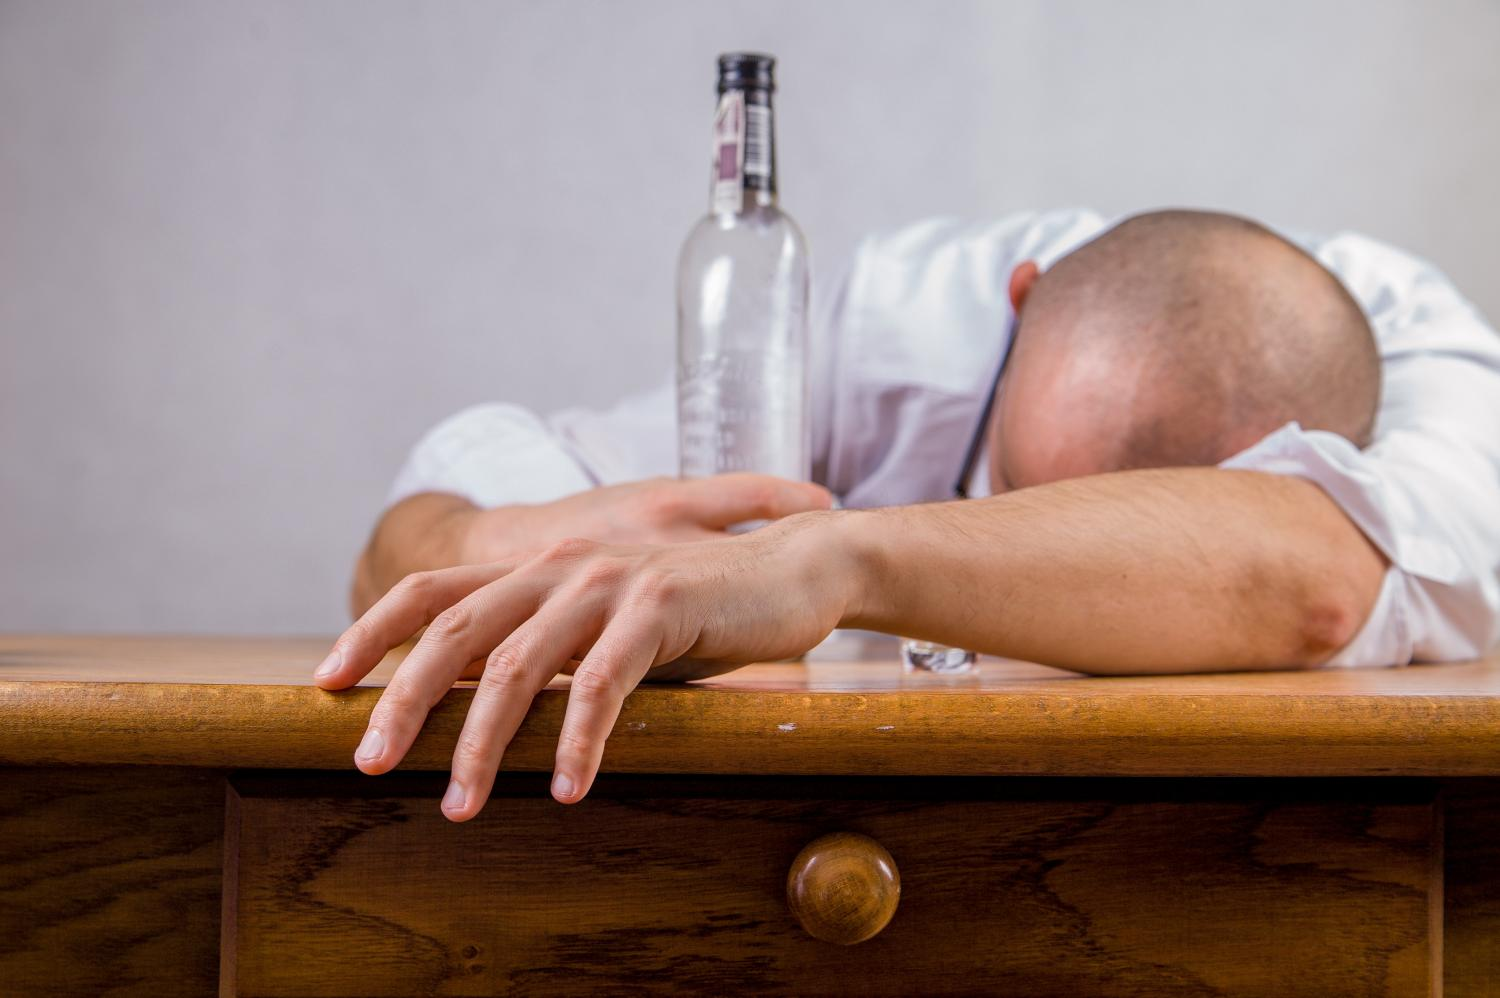 an introduction to the issue of date rape drugs rohypnol and ghb However, it is unclear whether hair tests can detect date rape drugs such as rohypnol or ghb  date rape drugs were detectable by hair analysis for at.